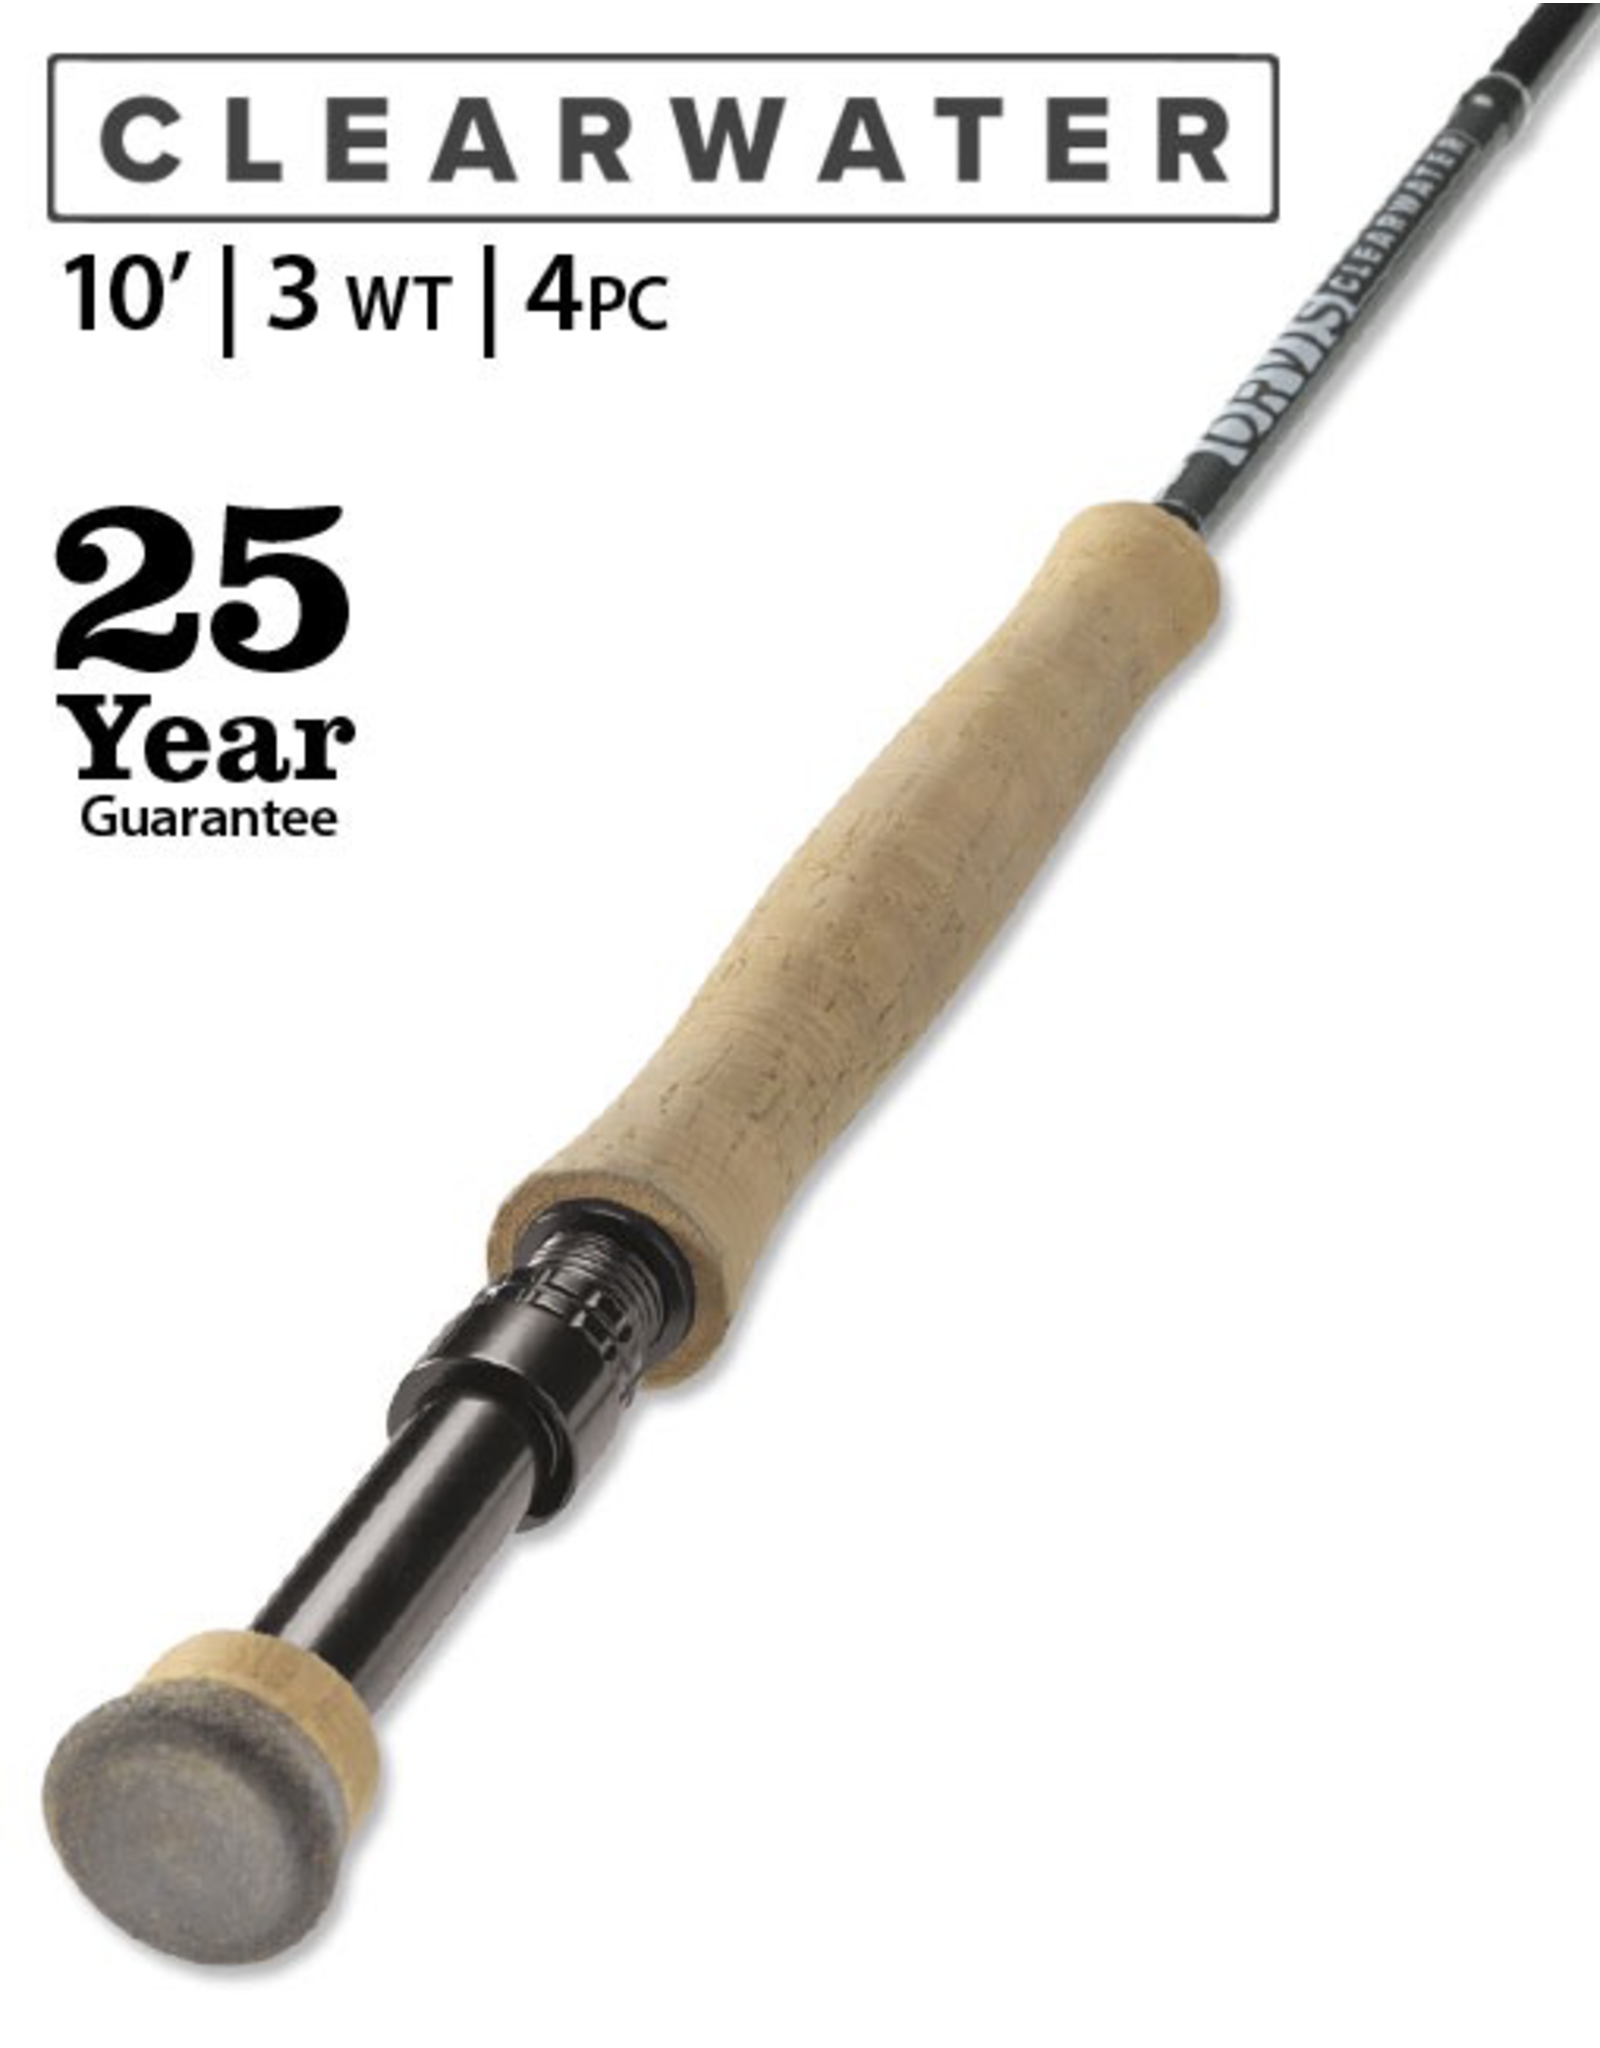 Orvis ORVIS Clearwater 10' 3wt Fly Rod (Euro)